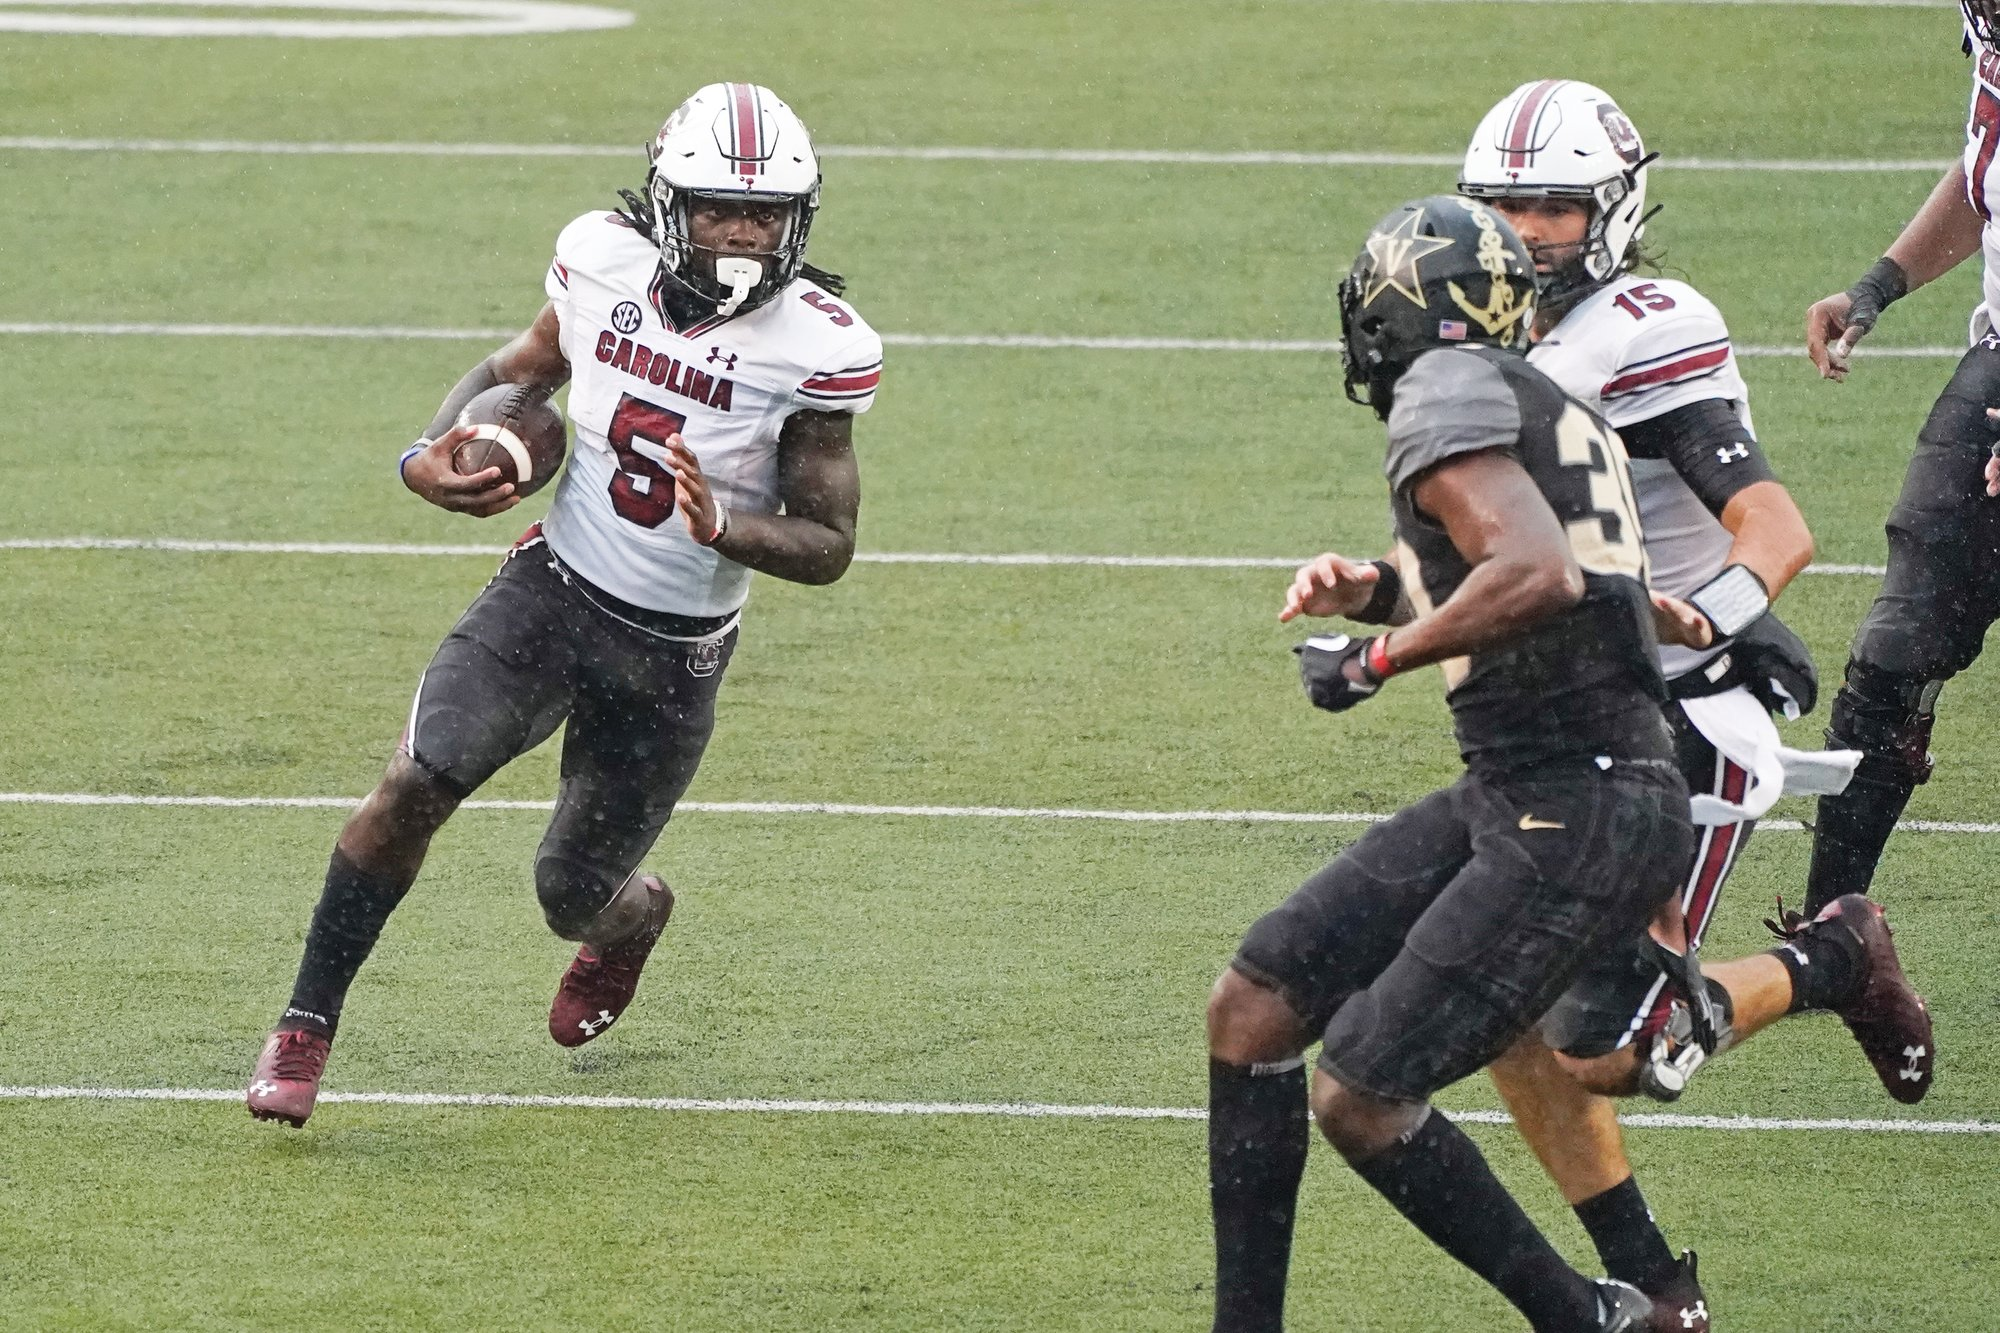 South Carolina wide receiver Dakereon Joyner (5) runs 47 yards for a touchdown against Vanderbilt during the Gamecocks' 41-7 win on Saturday in Nashville, Tennessee.